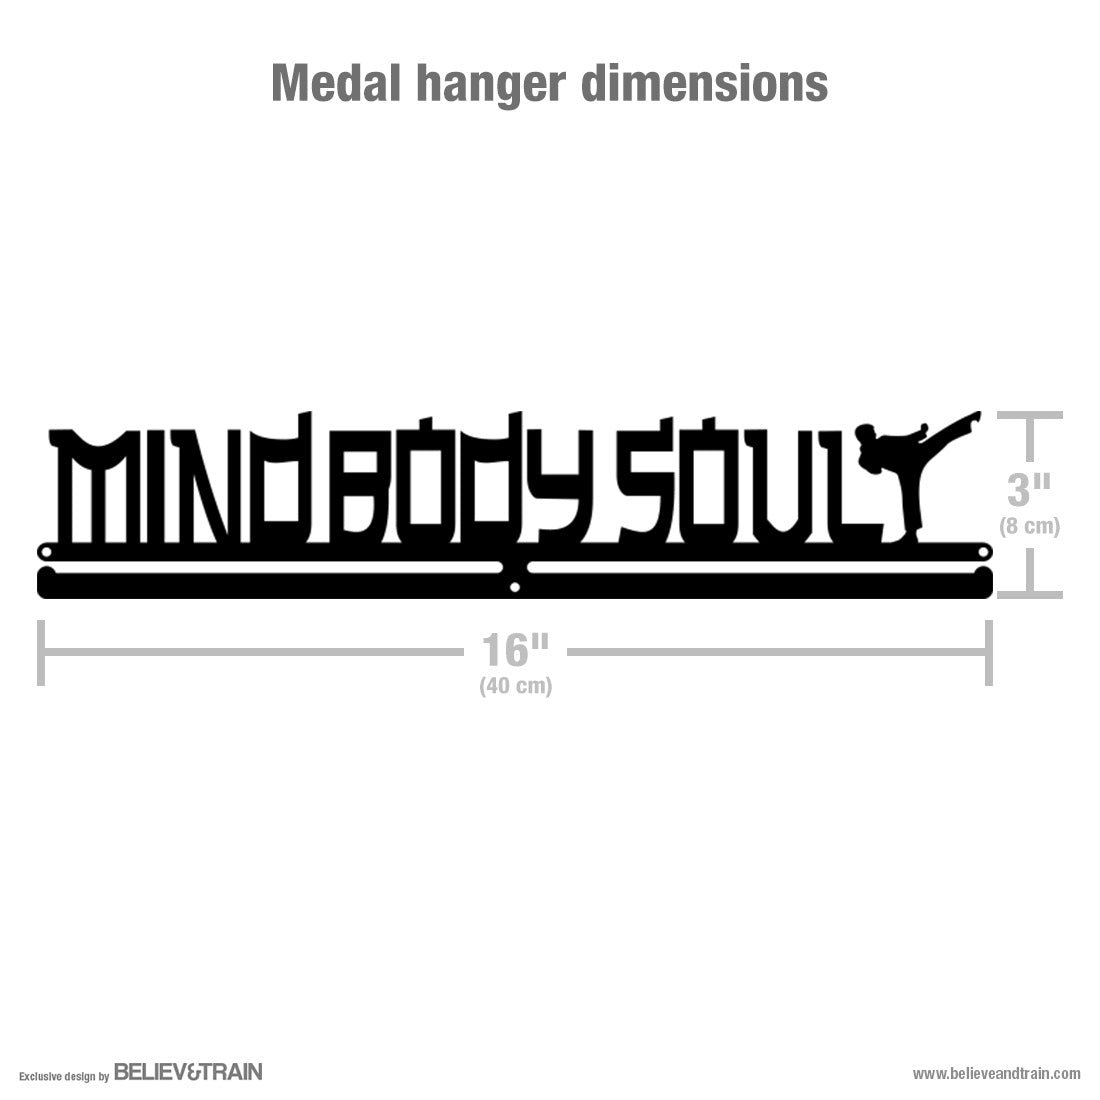 Mind Body Soul - Martial Arts Medal Hanger